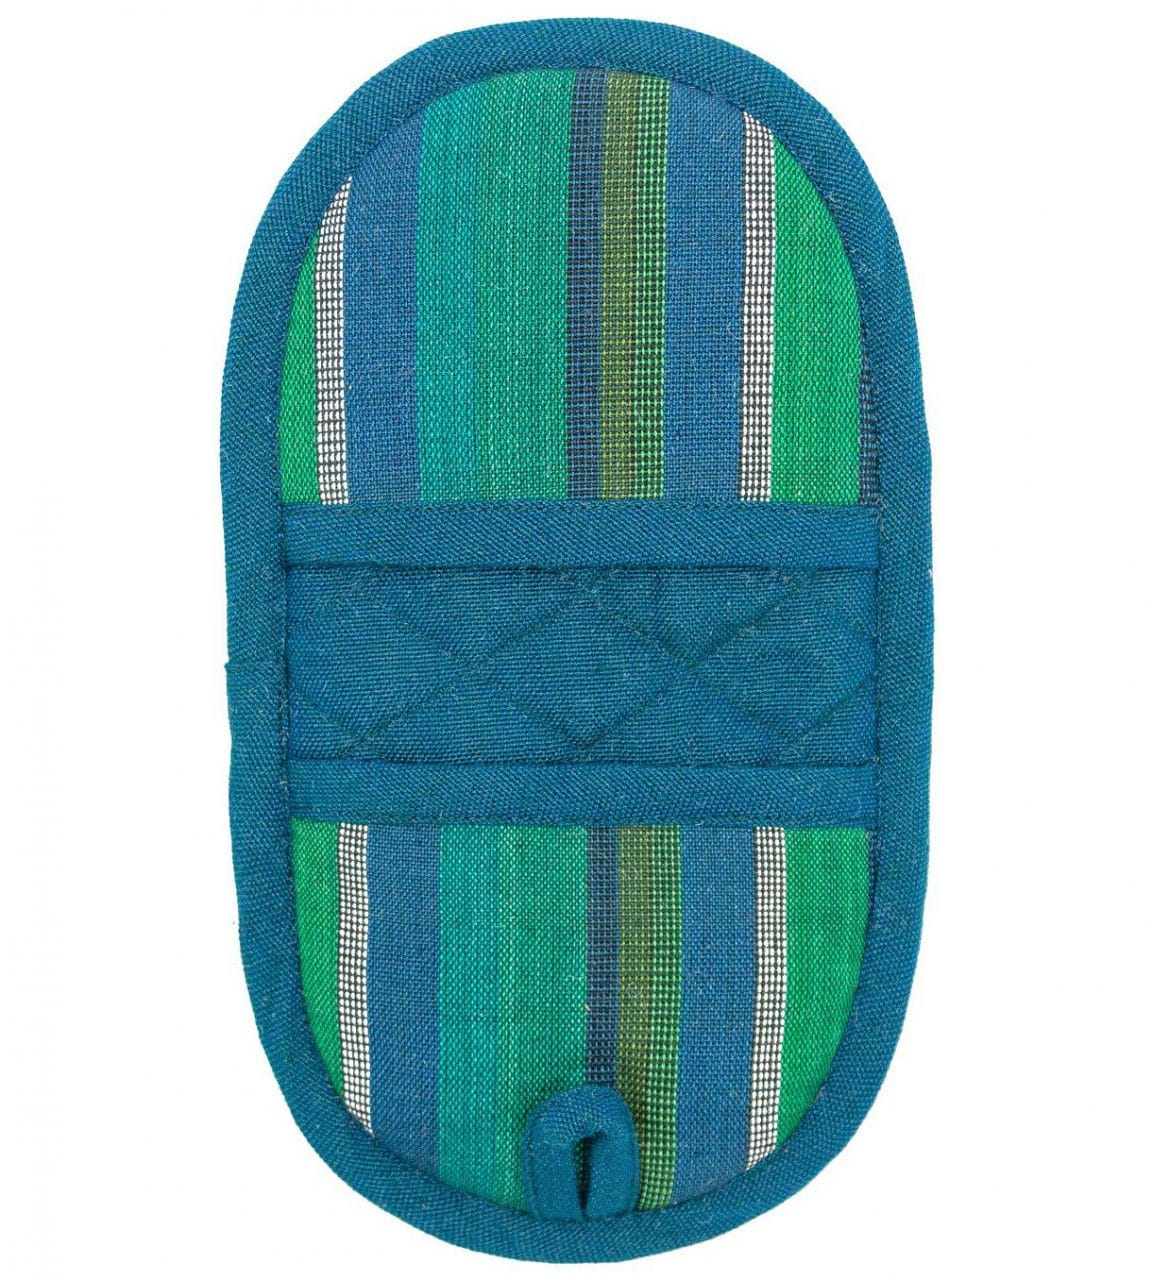 Double-Ended Oval Pot Holder - A Variety of Colors